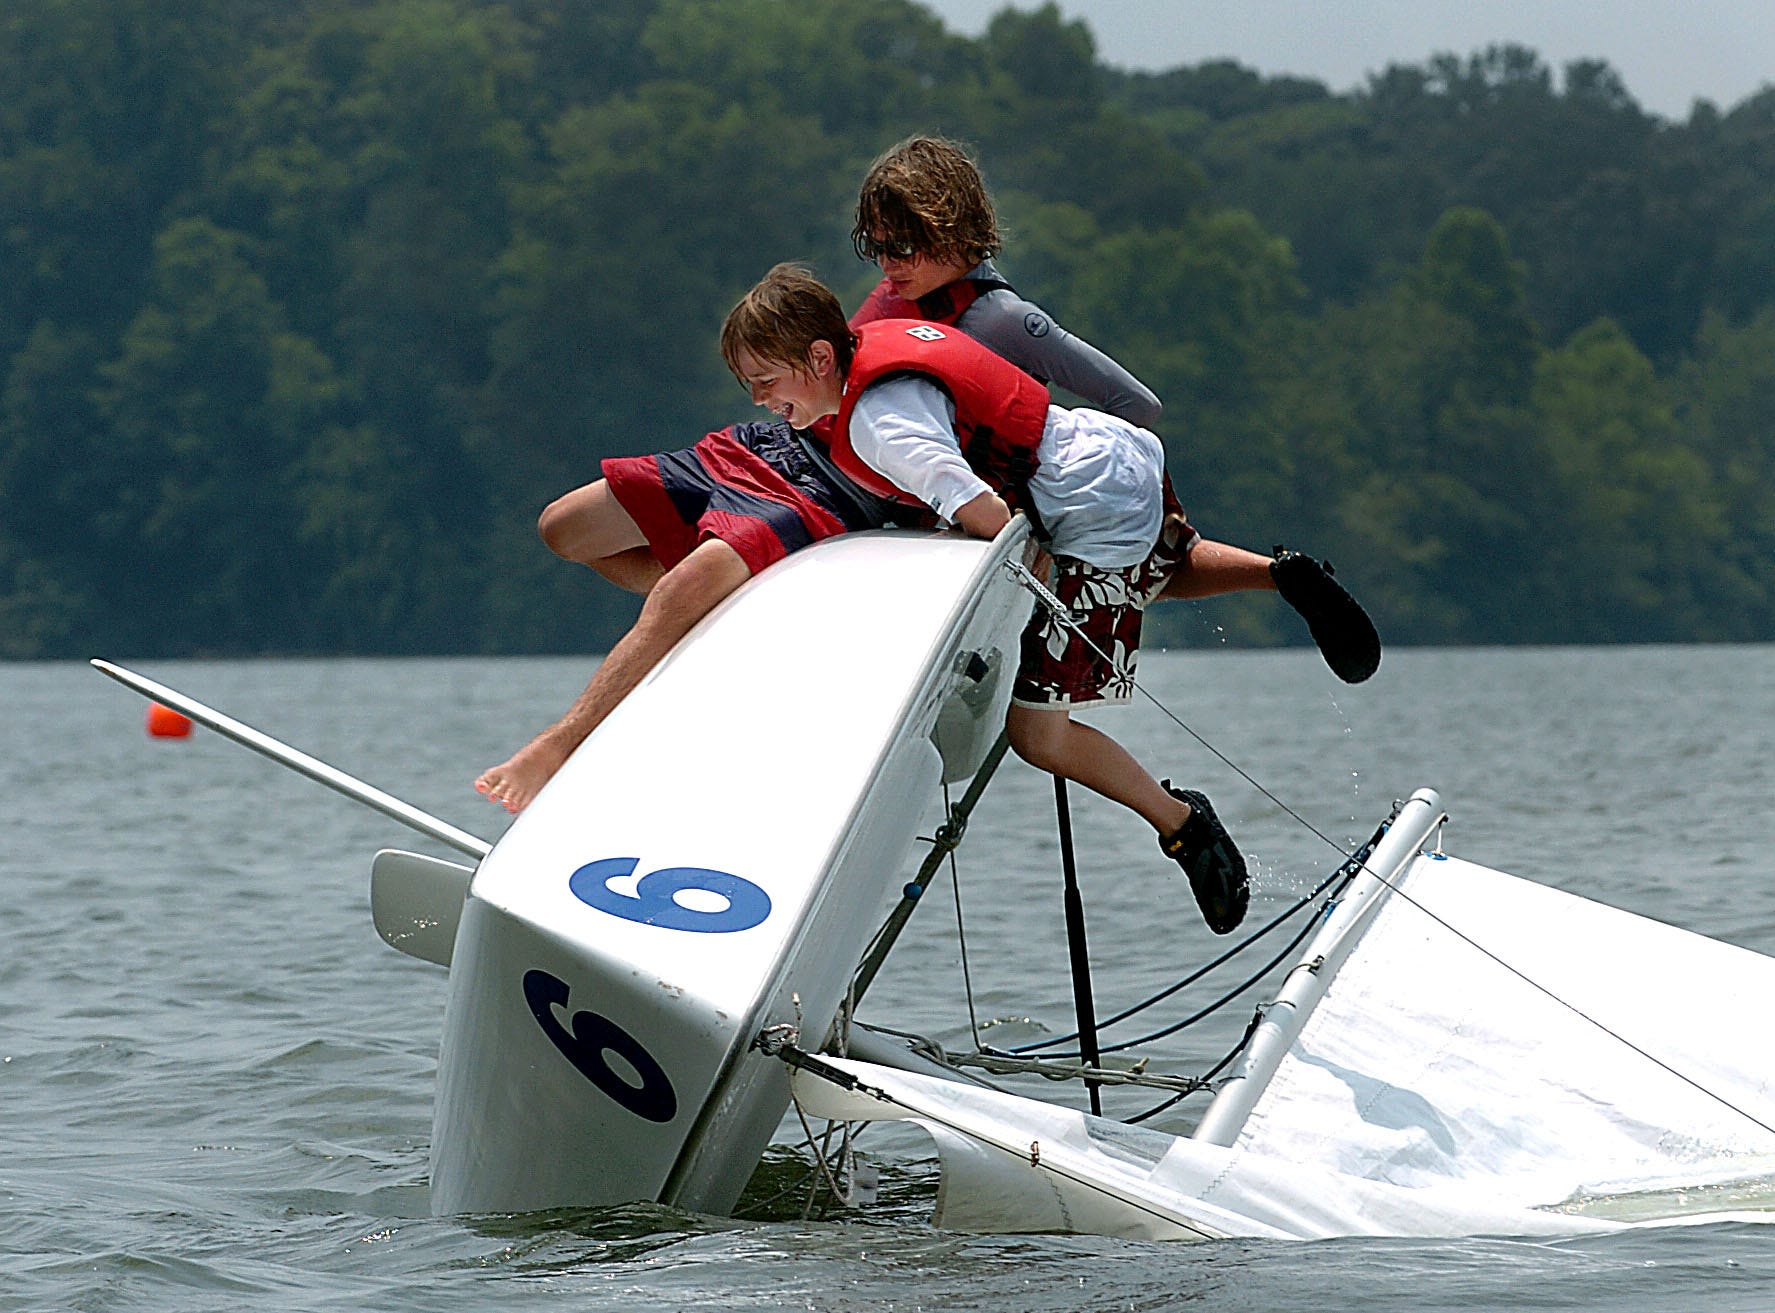 Campers between 9th and 12th grades are learning how to sail or sail better at the 2005 Sail Camp held at the Concord Yacht Club in West Knox County. One of the skills all sailers must learn is how to survive when their boat overturns and how to get sailing again. Ace Englert, front, and Ben Quigley practice during camp Thursday afternoon.